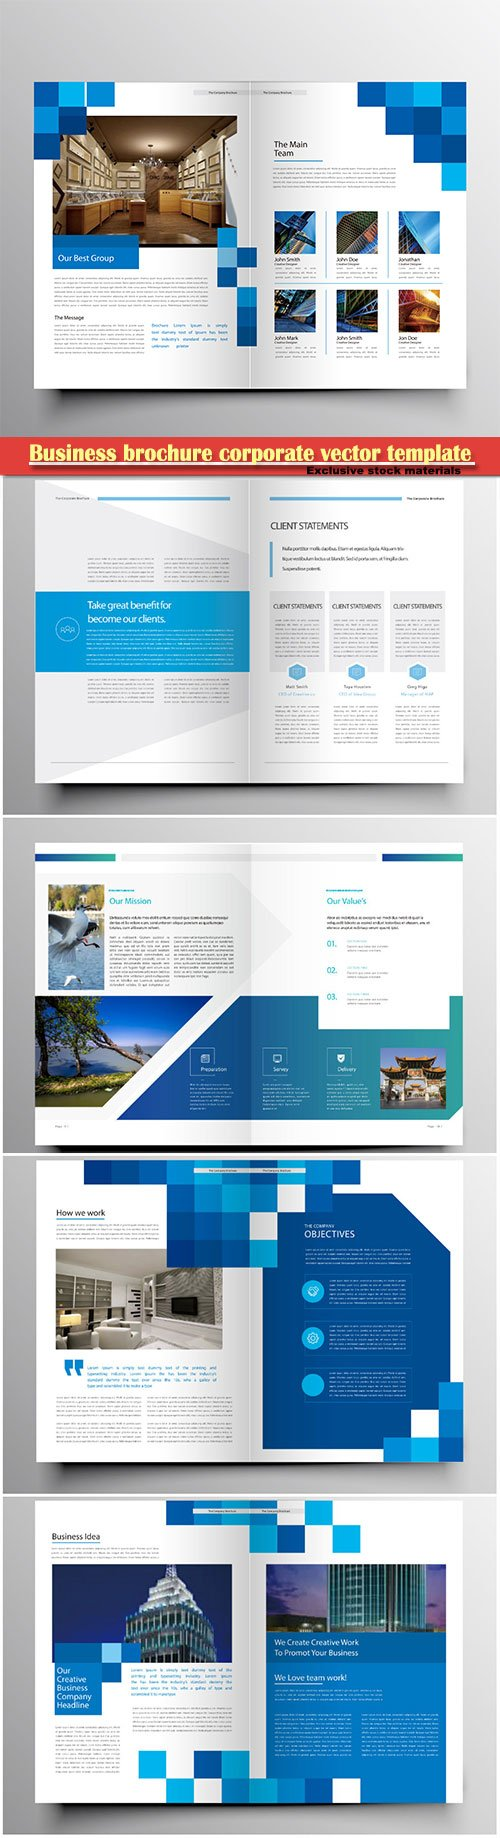 Business brochure corporate vector template, magazine flyer mockup # 50